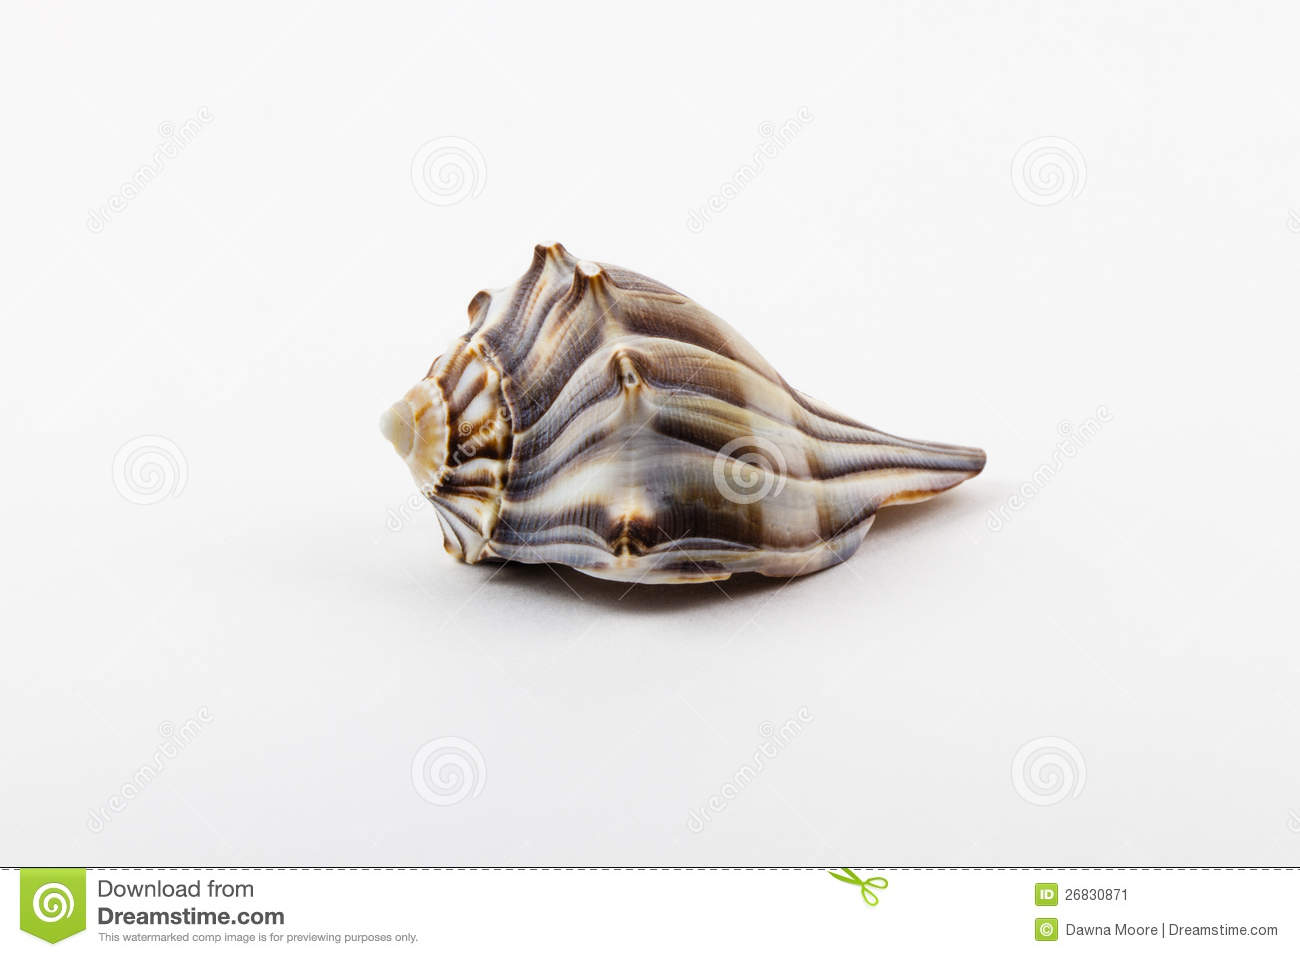 A Knobbed Whelk. Stock Image.